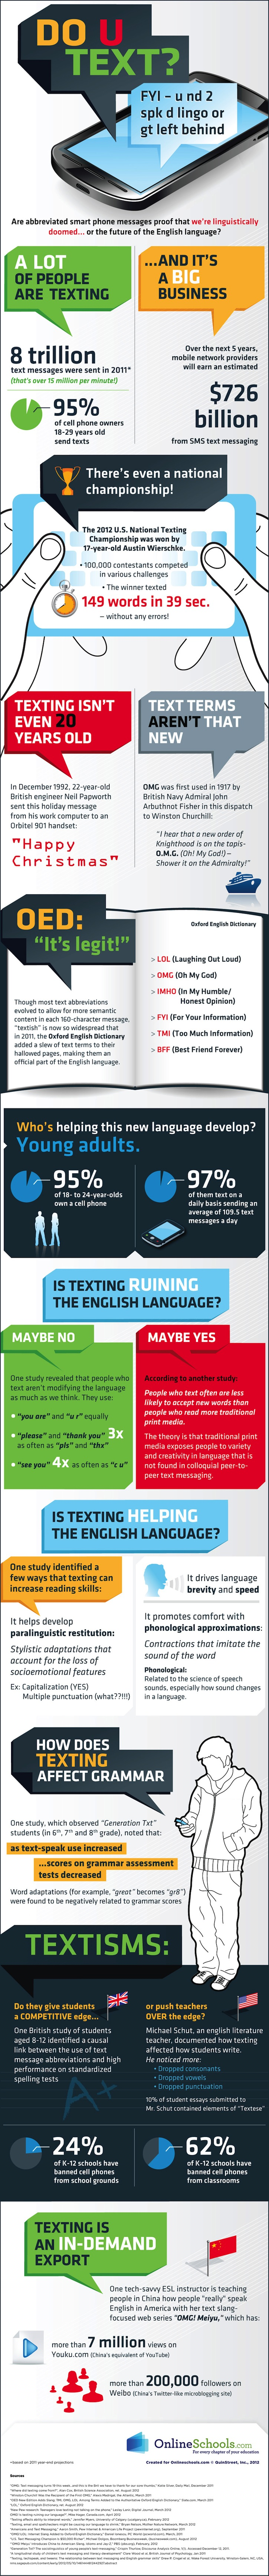 Texting and the English Language Infographic